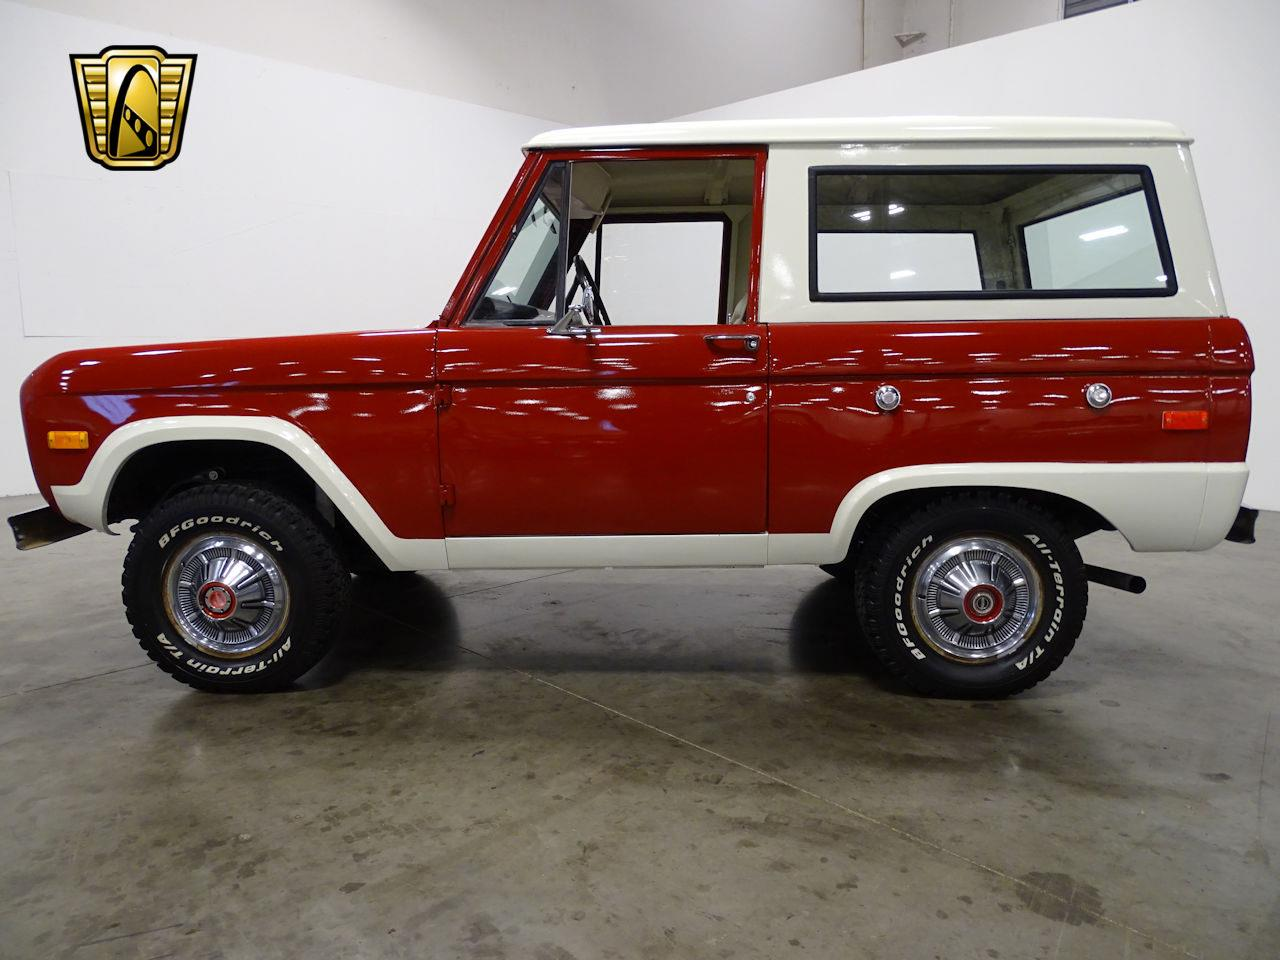 Large Picture of 1973 Ford Bronco located in Tennessee - $37,995.00 Offered by Gateway Classic Cars - Nashville - MN68